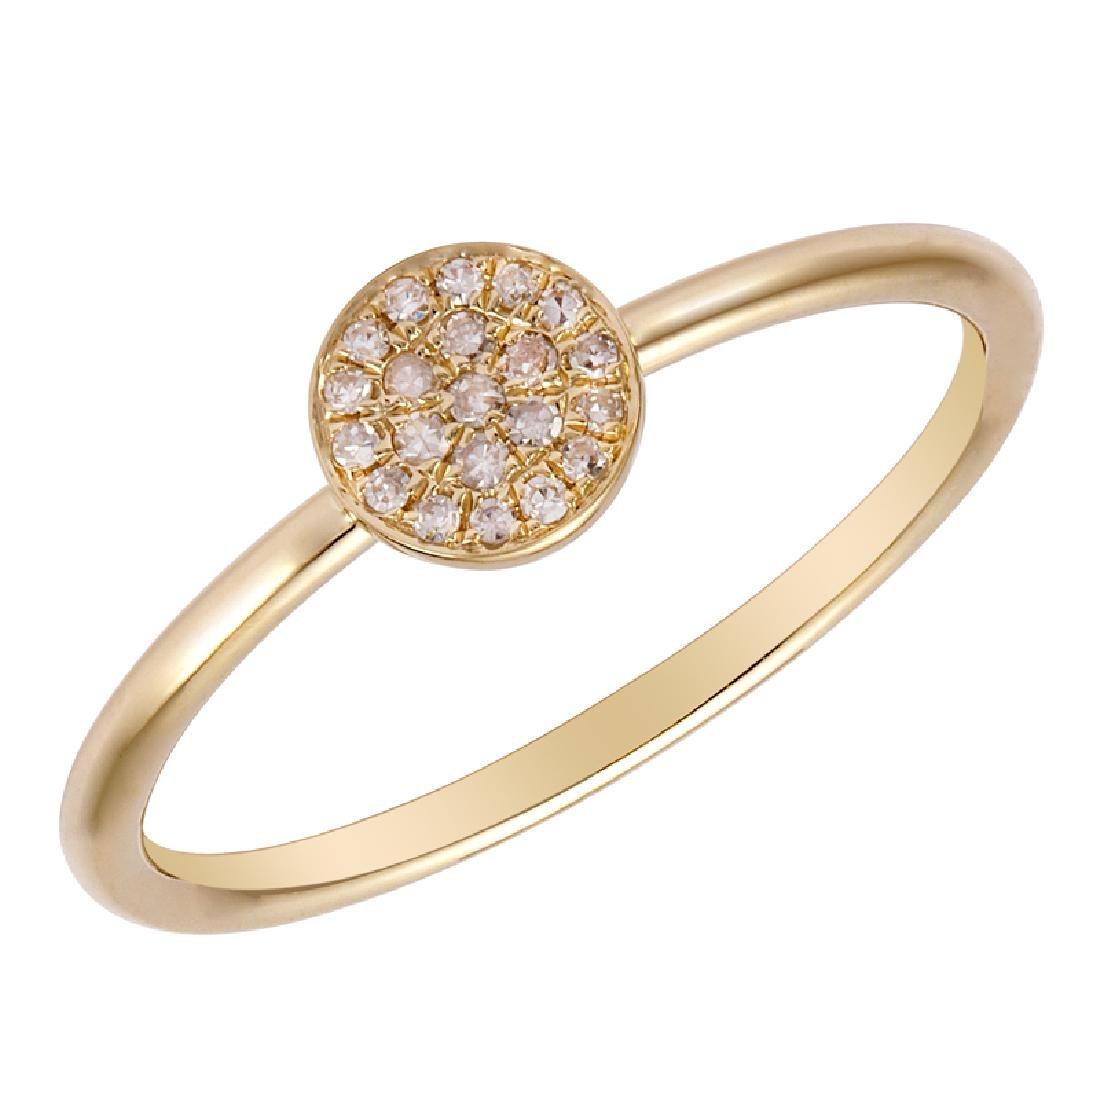 14KT Yellow Gold Women's Diamond Ring - 2